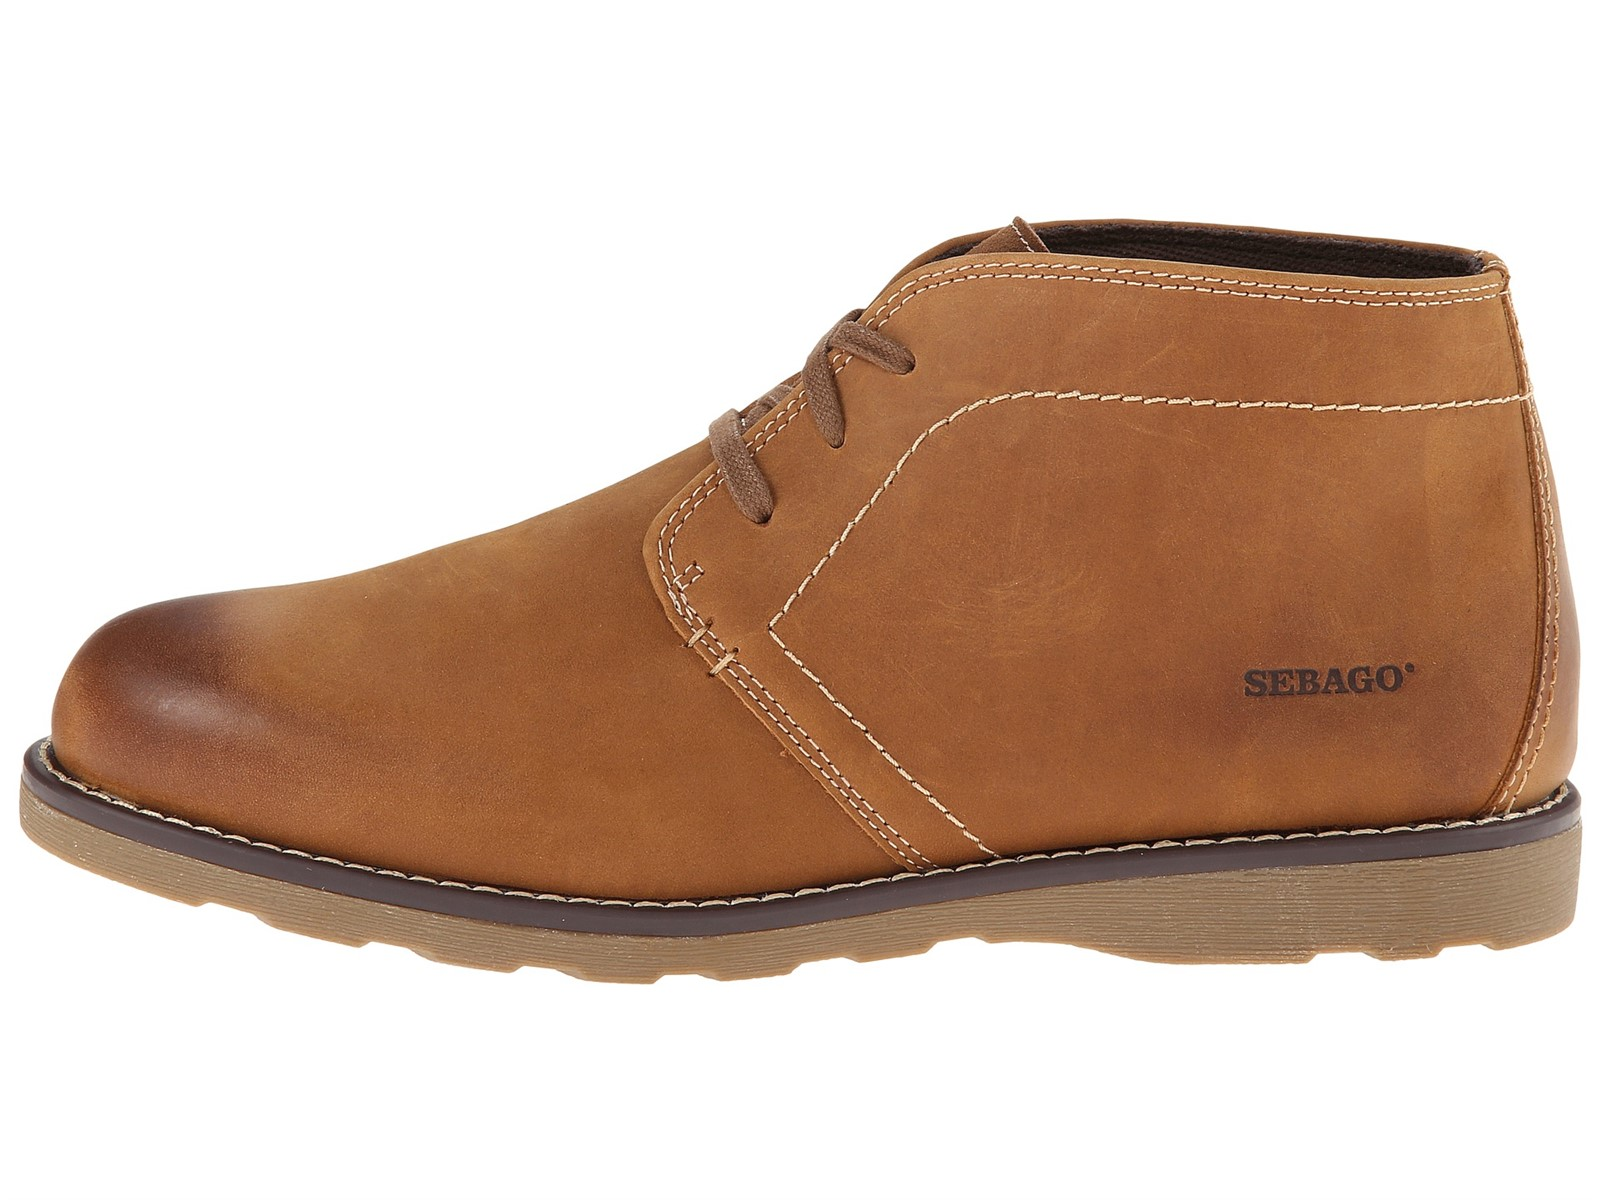 new sebago reese leather chukka boots mens size 7